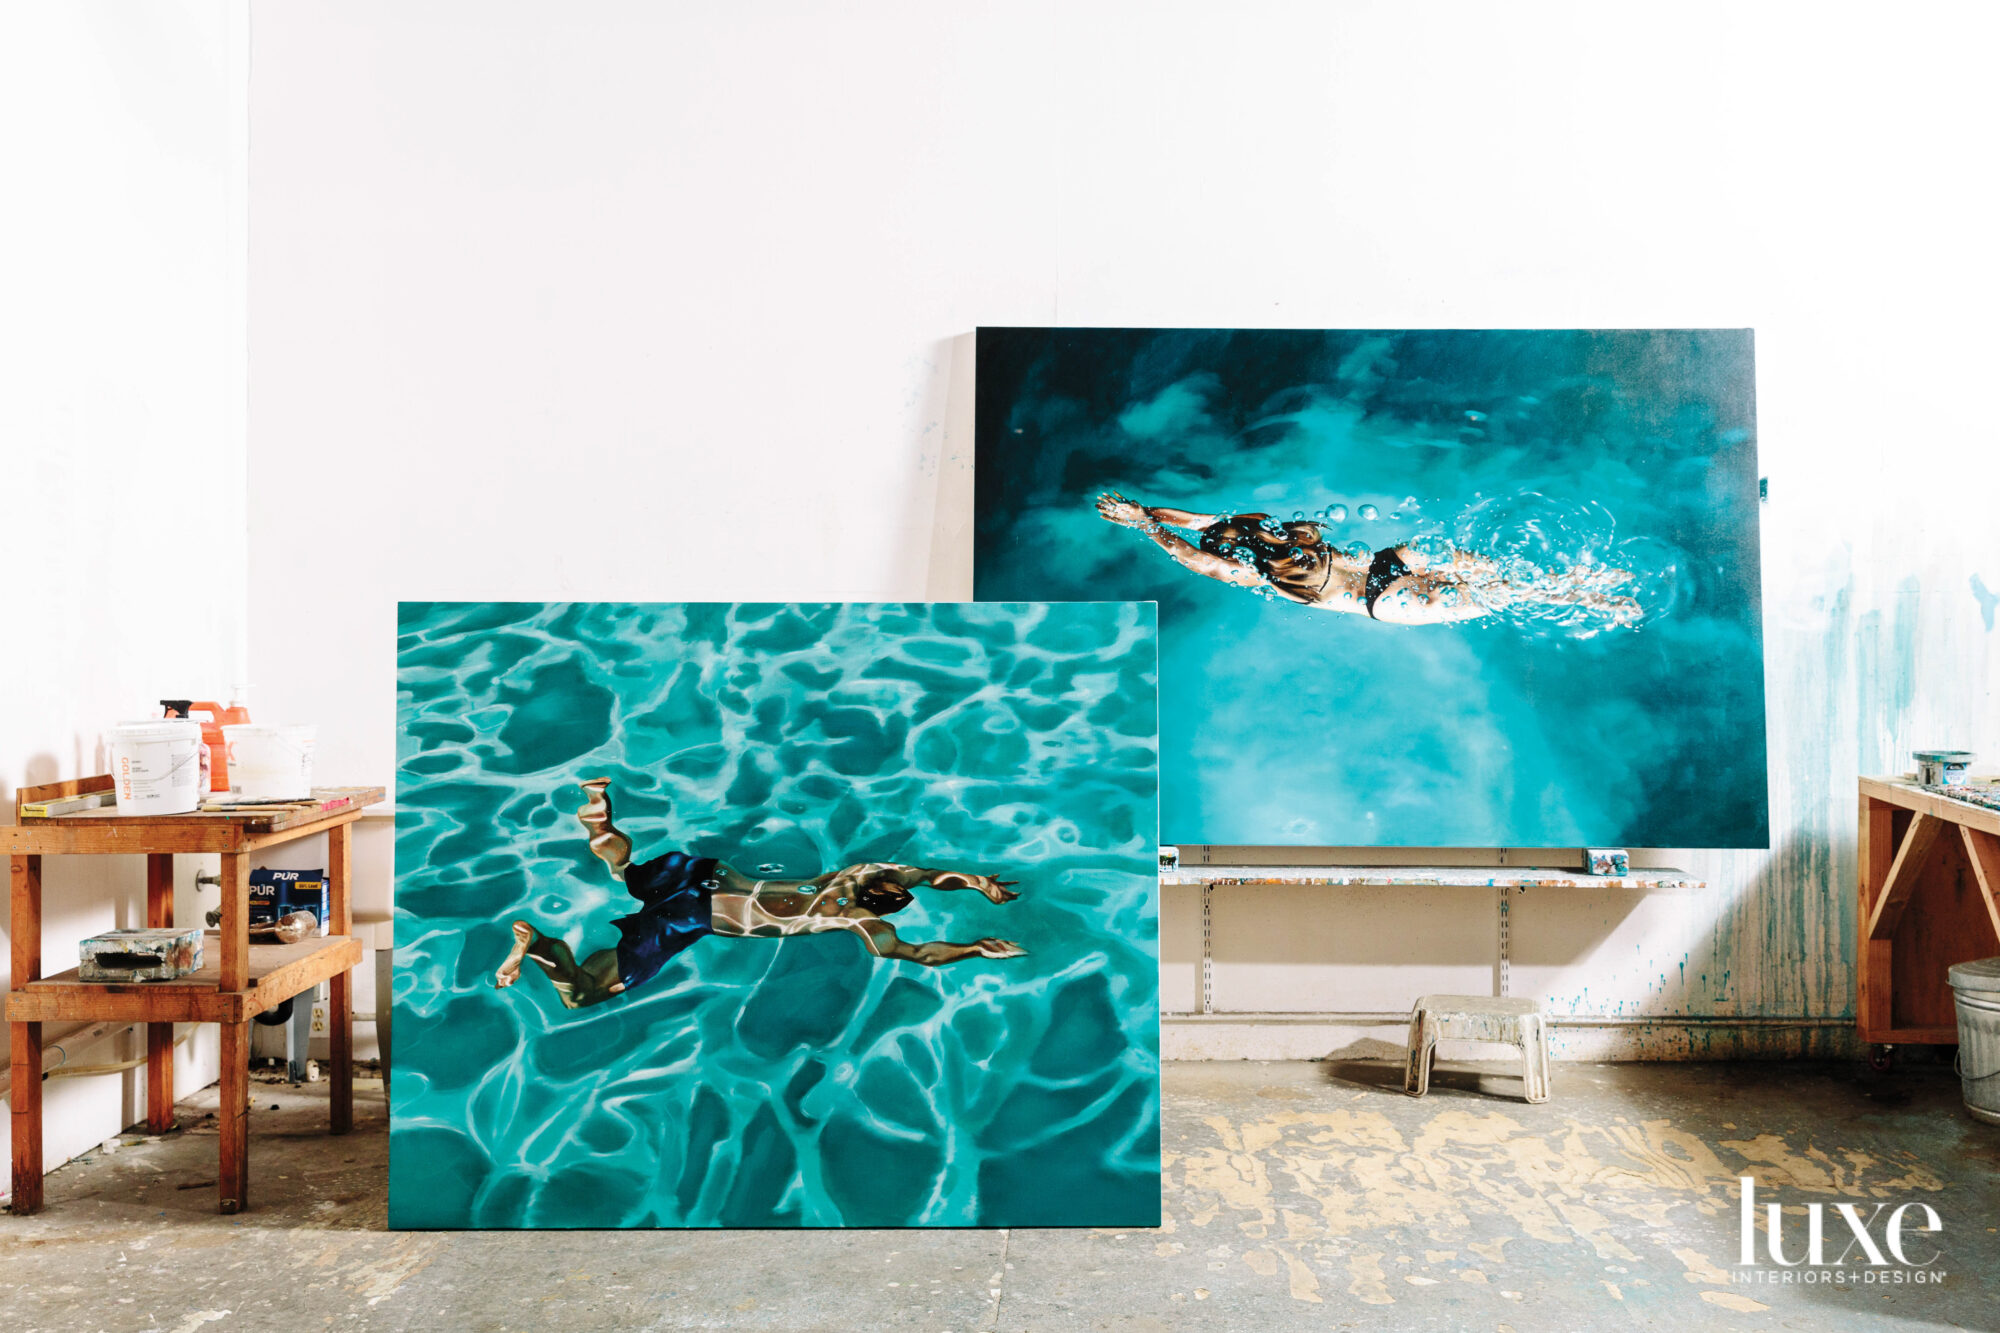 A pair of Zener's paintings show people swimming.